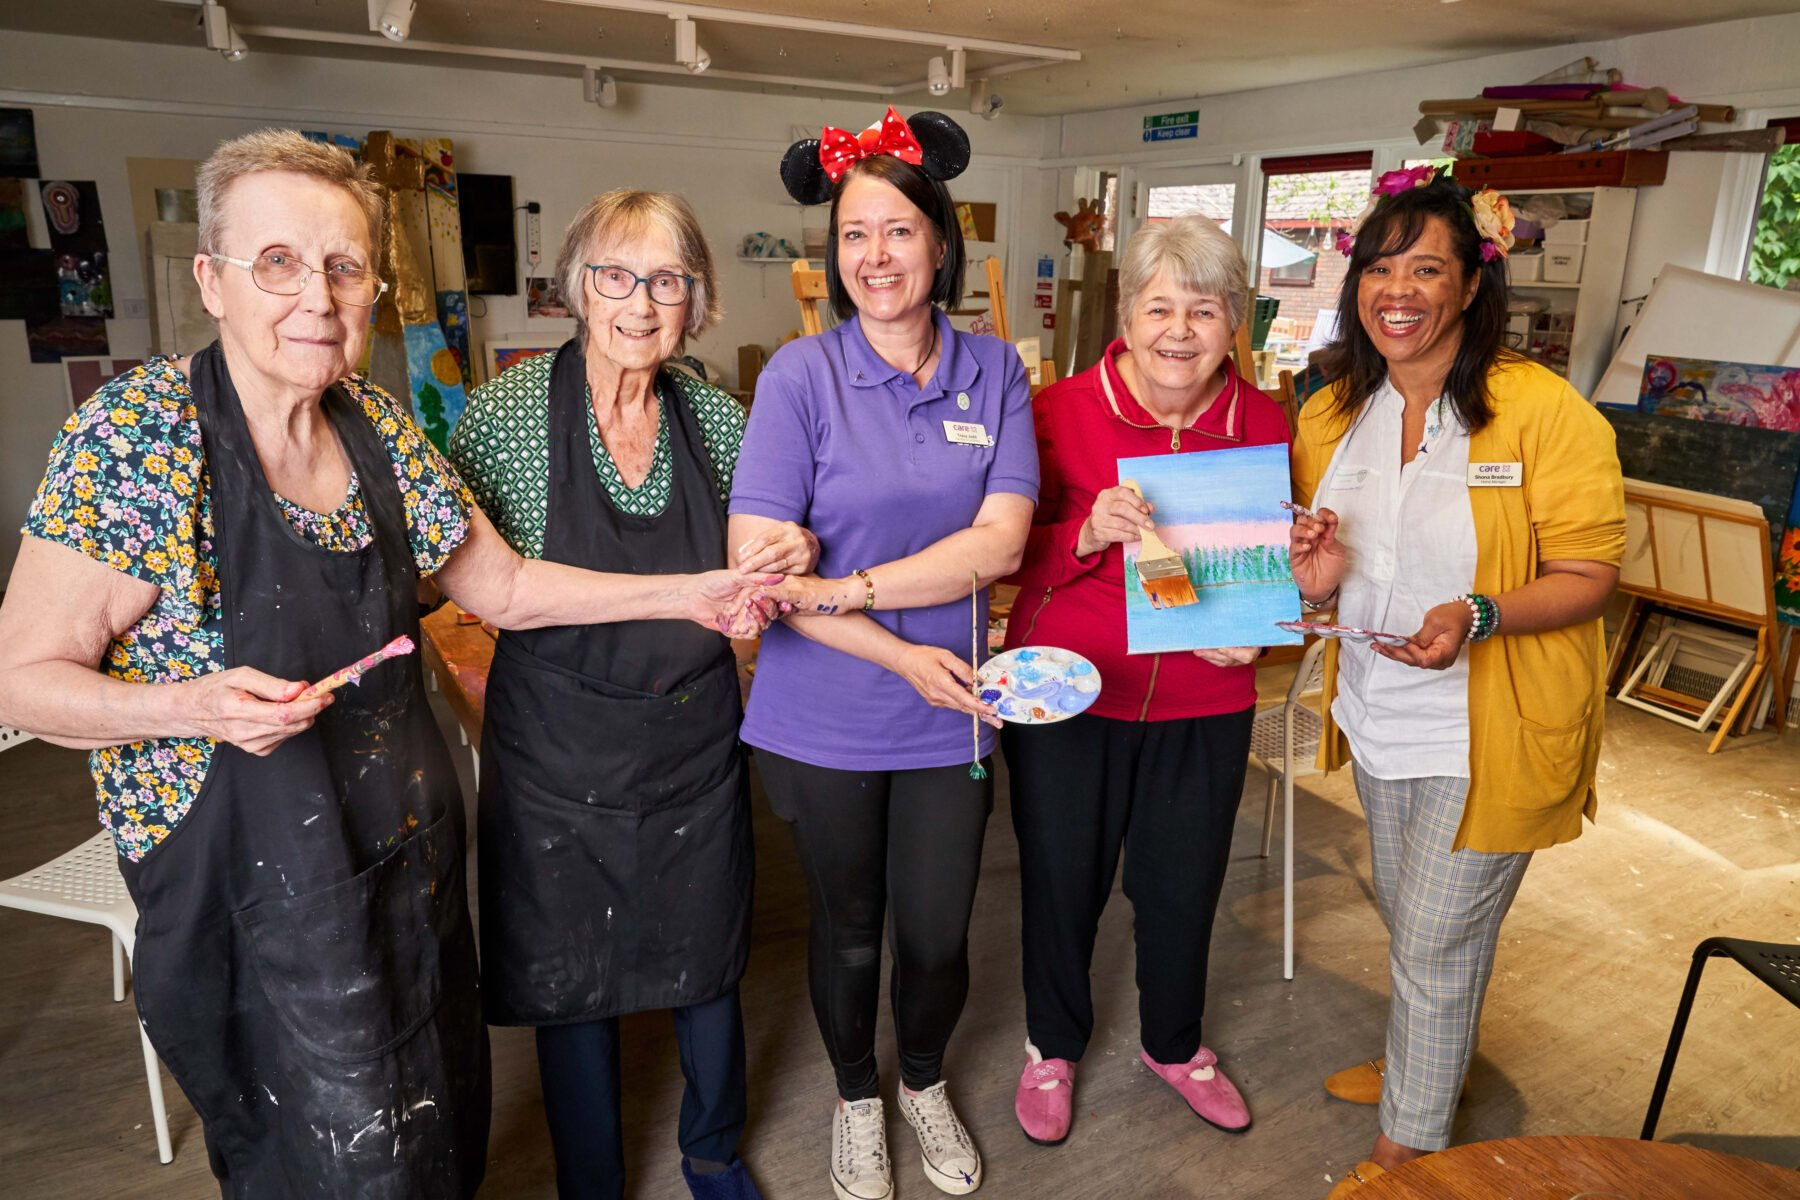 Get creative with East Grinstead care home this Care Home Open Day